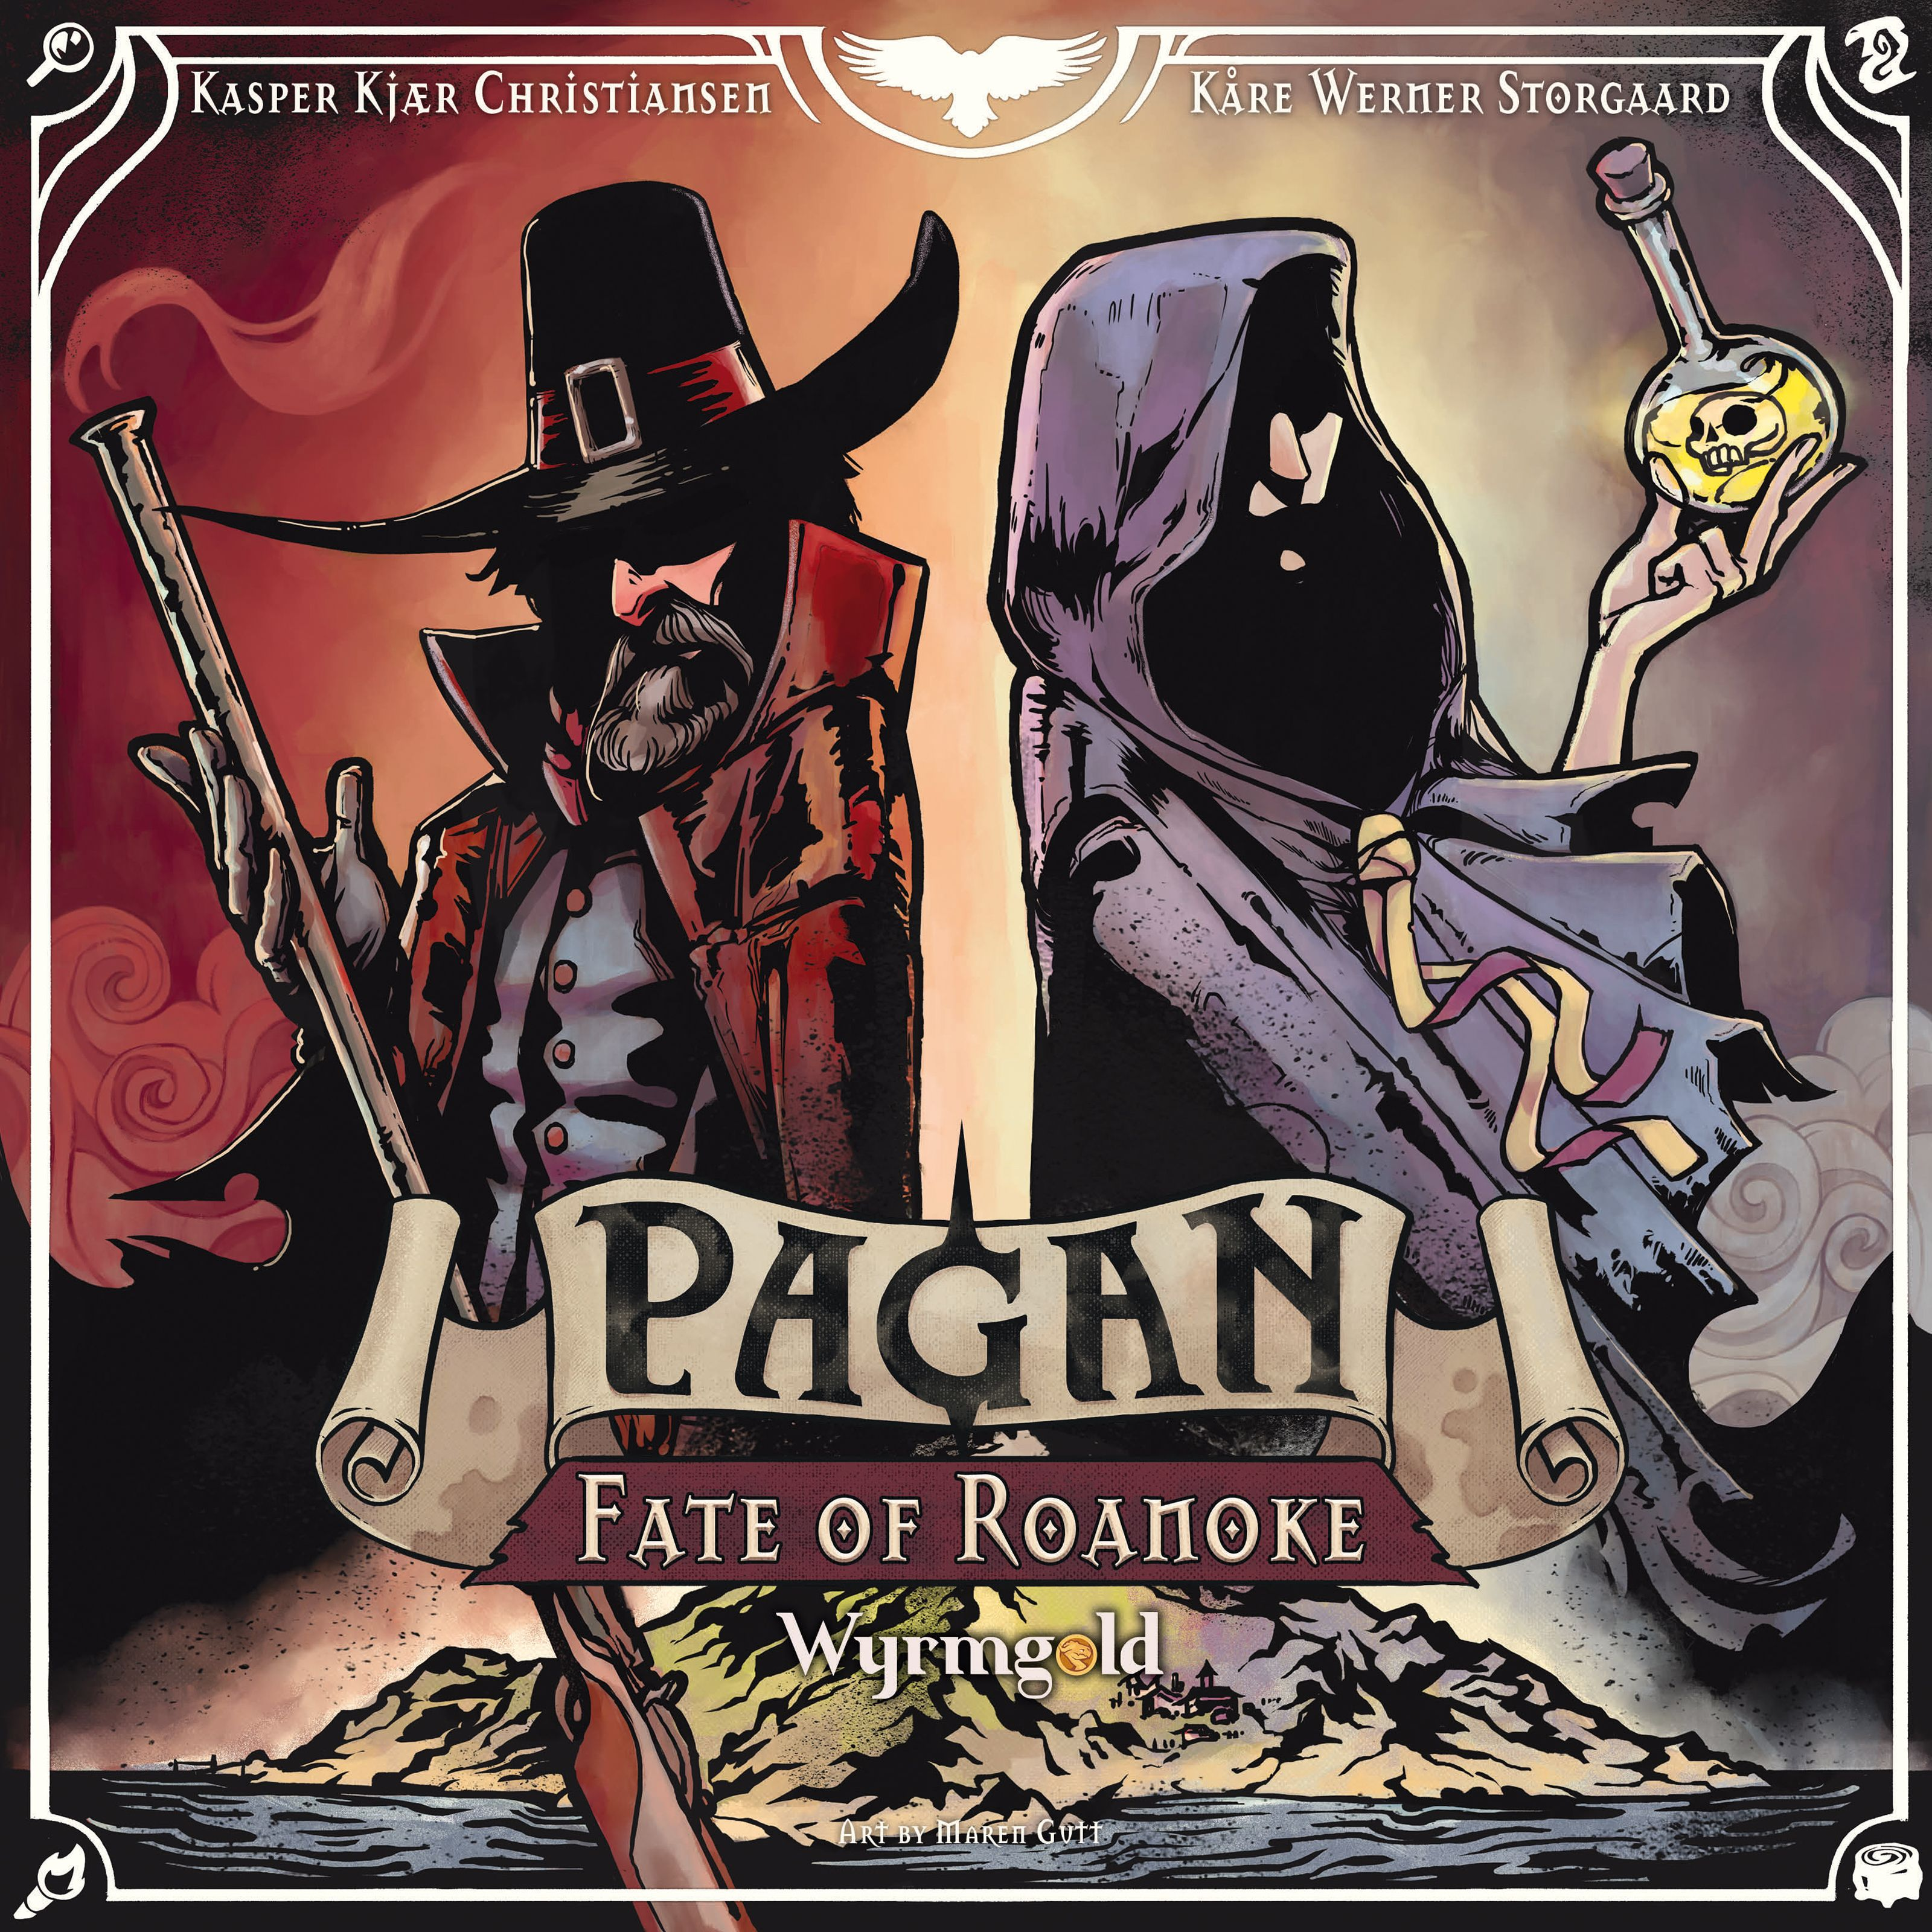 Pagan: Fate of Roanoke